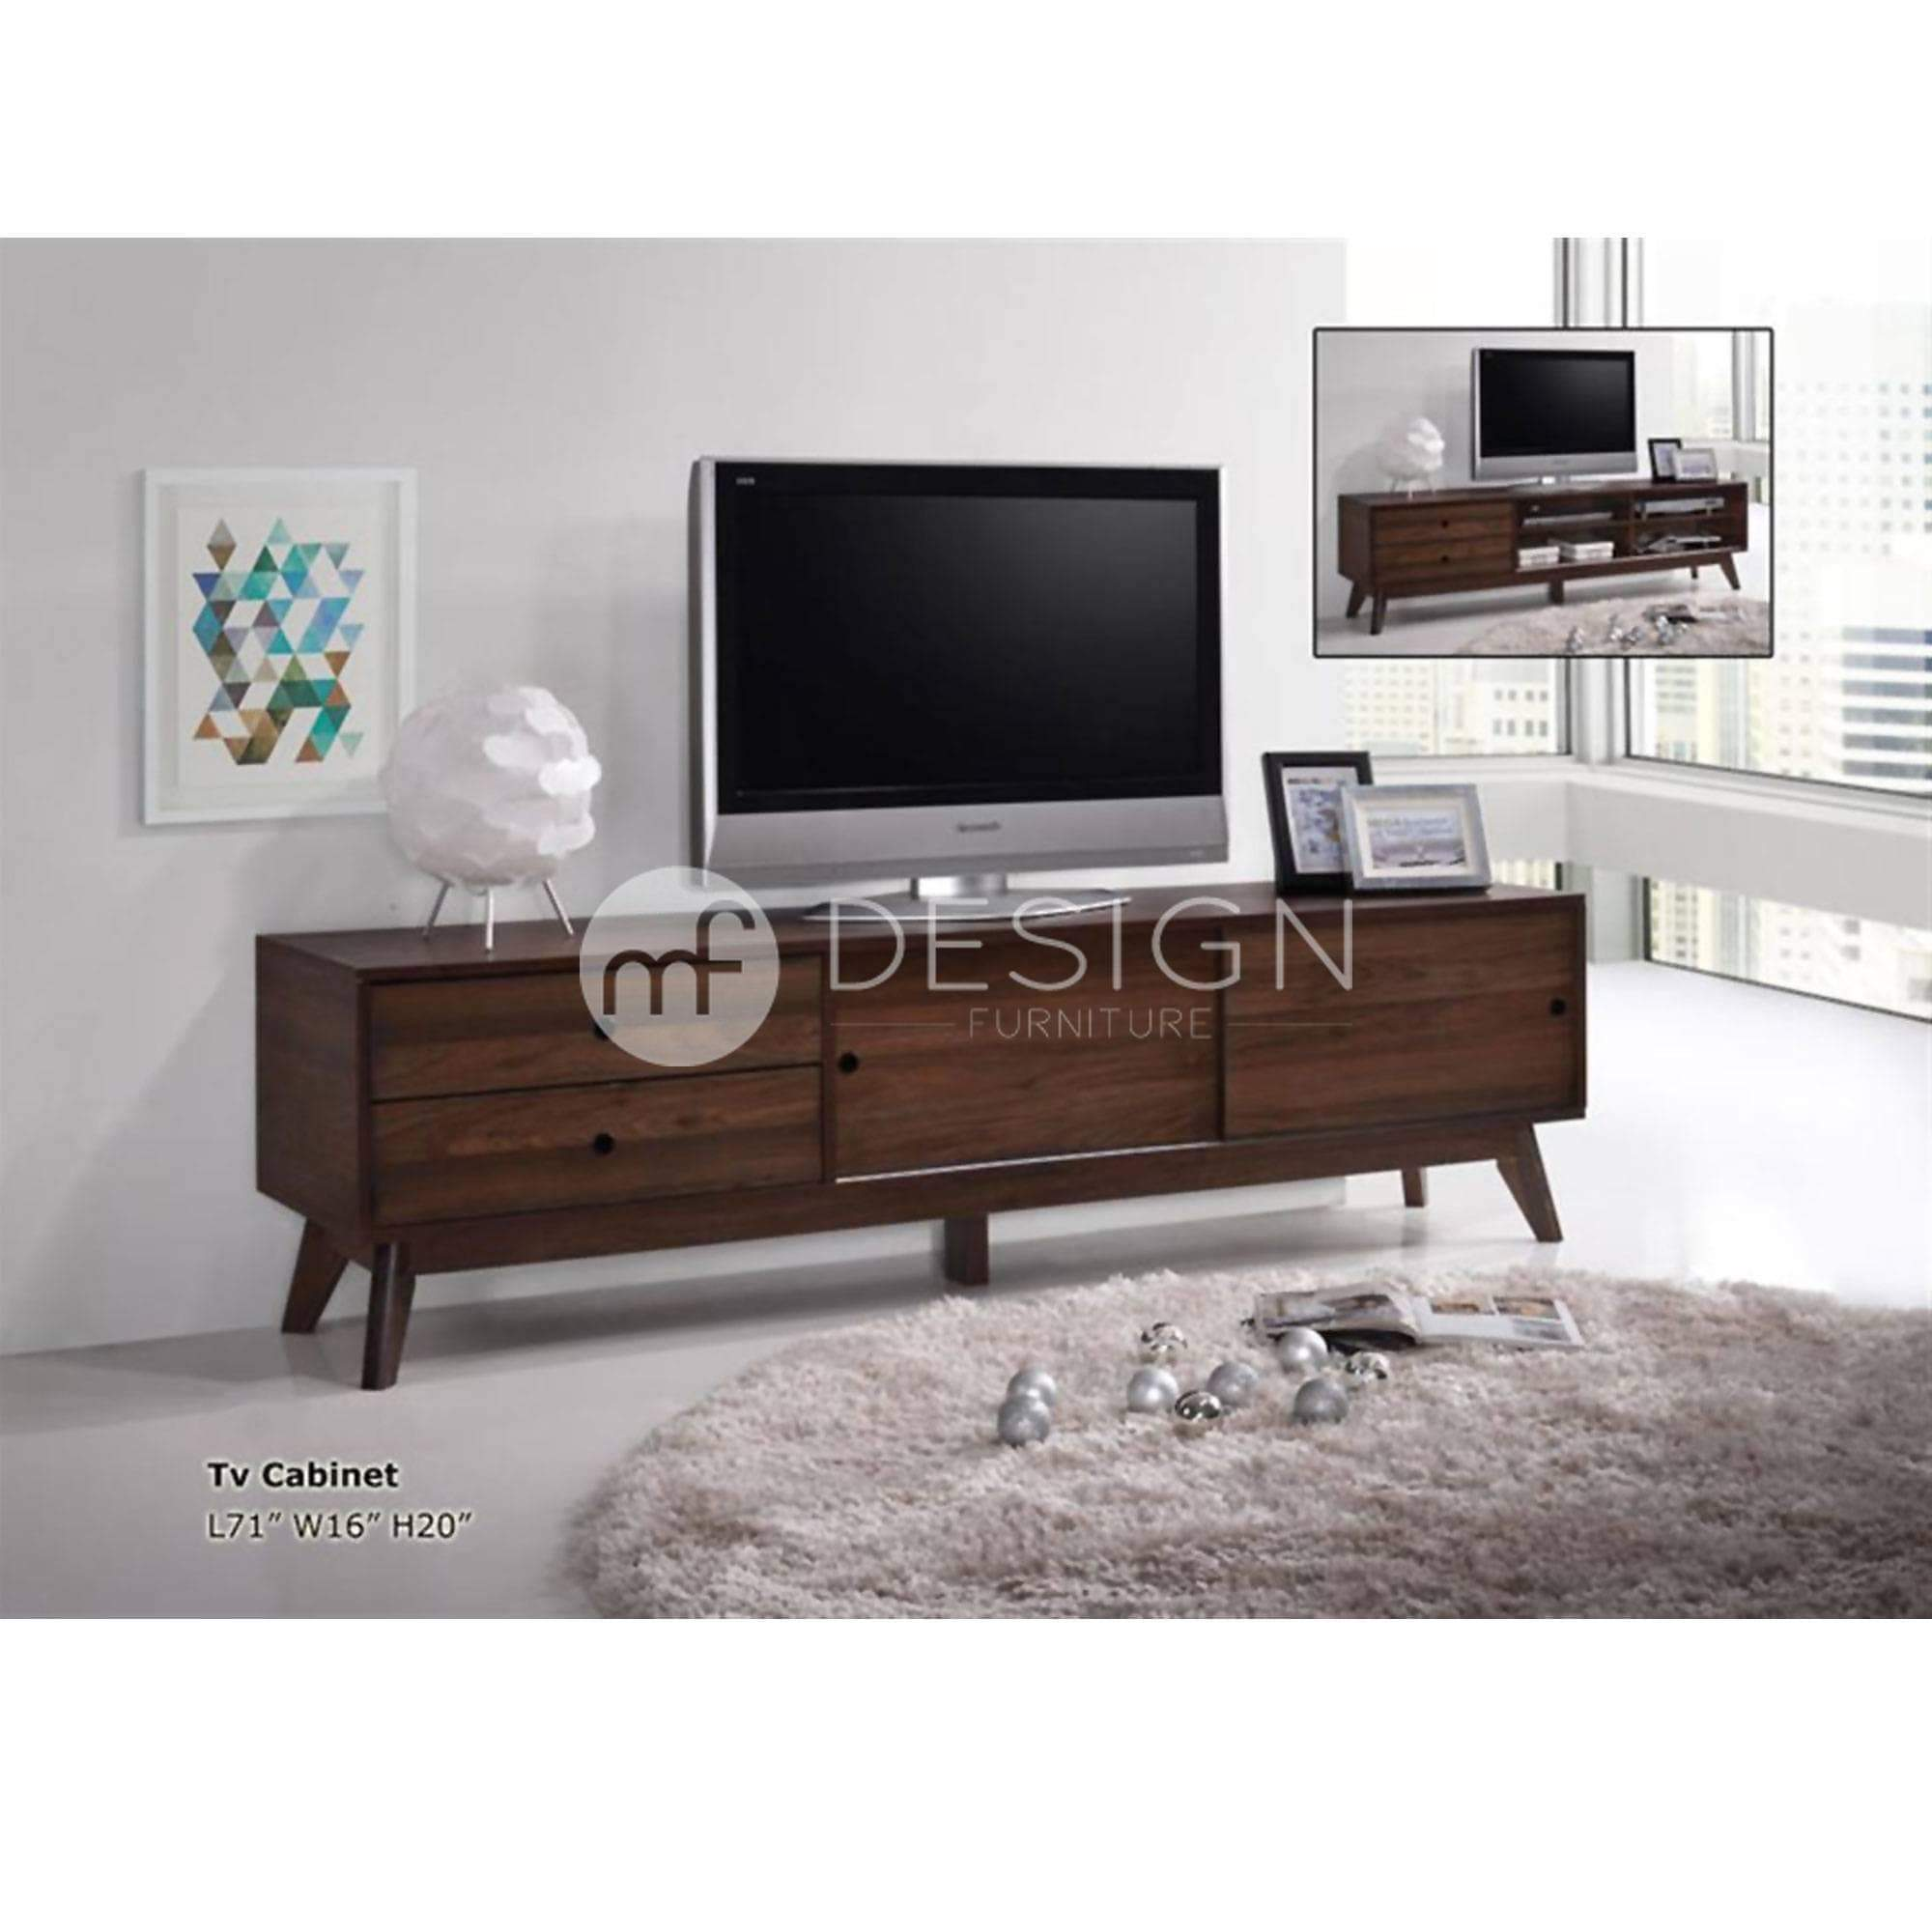 mfdesign88 Tv Cabinet 6FT / BROWN / MDF AIKIN 6 FEET TV CABINET